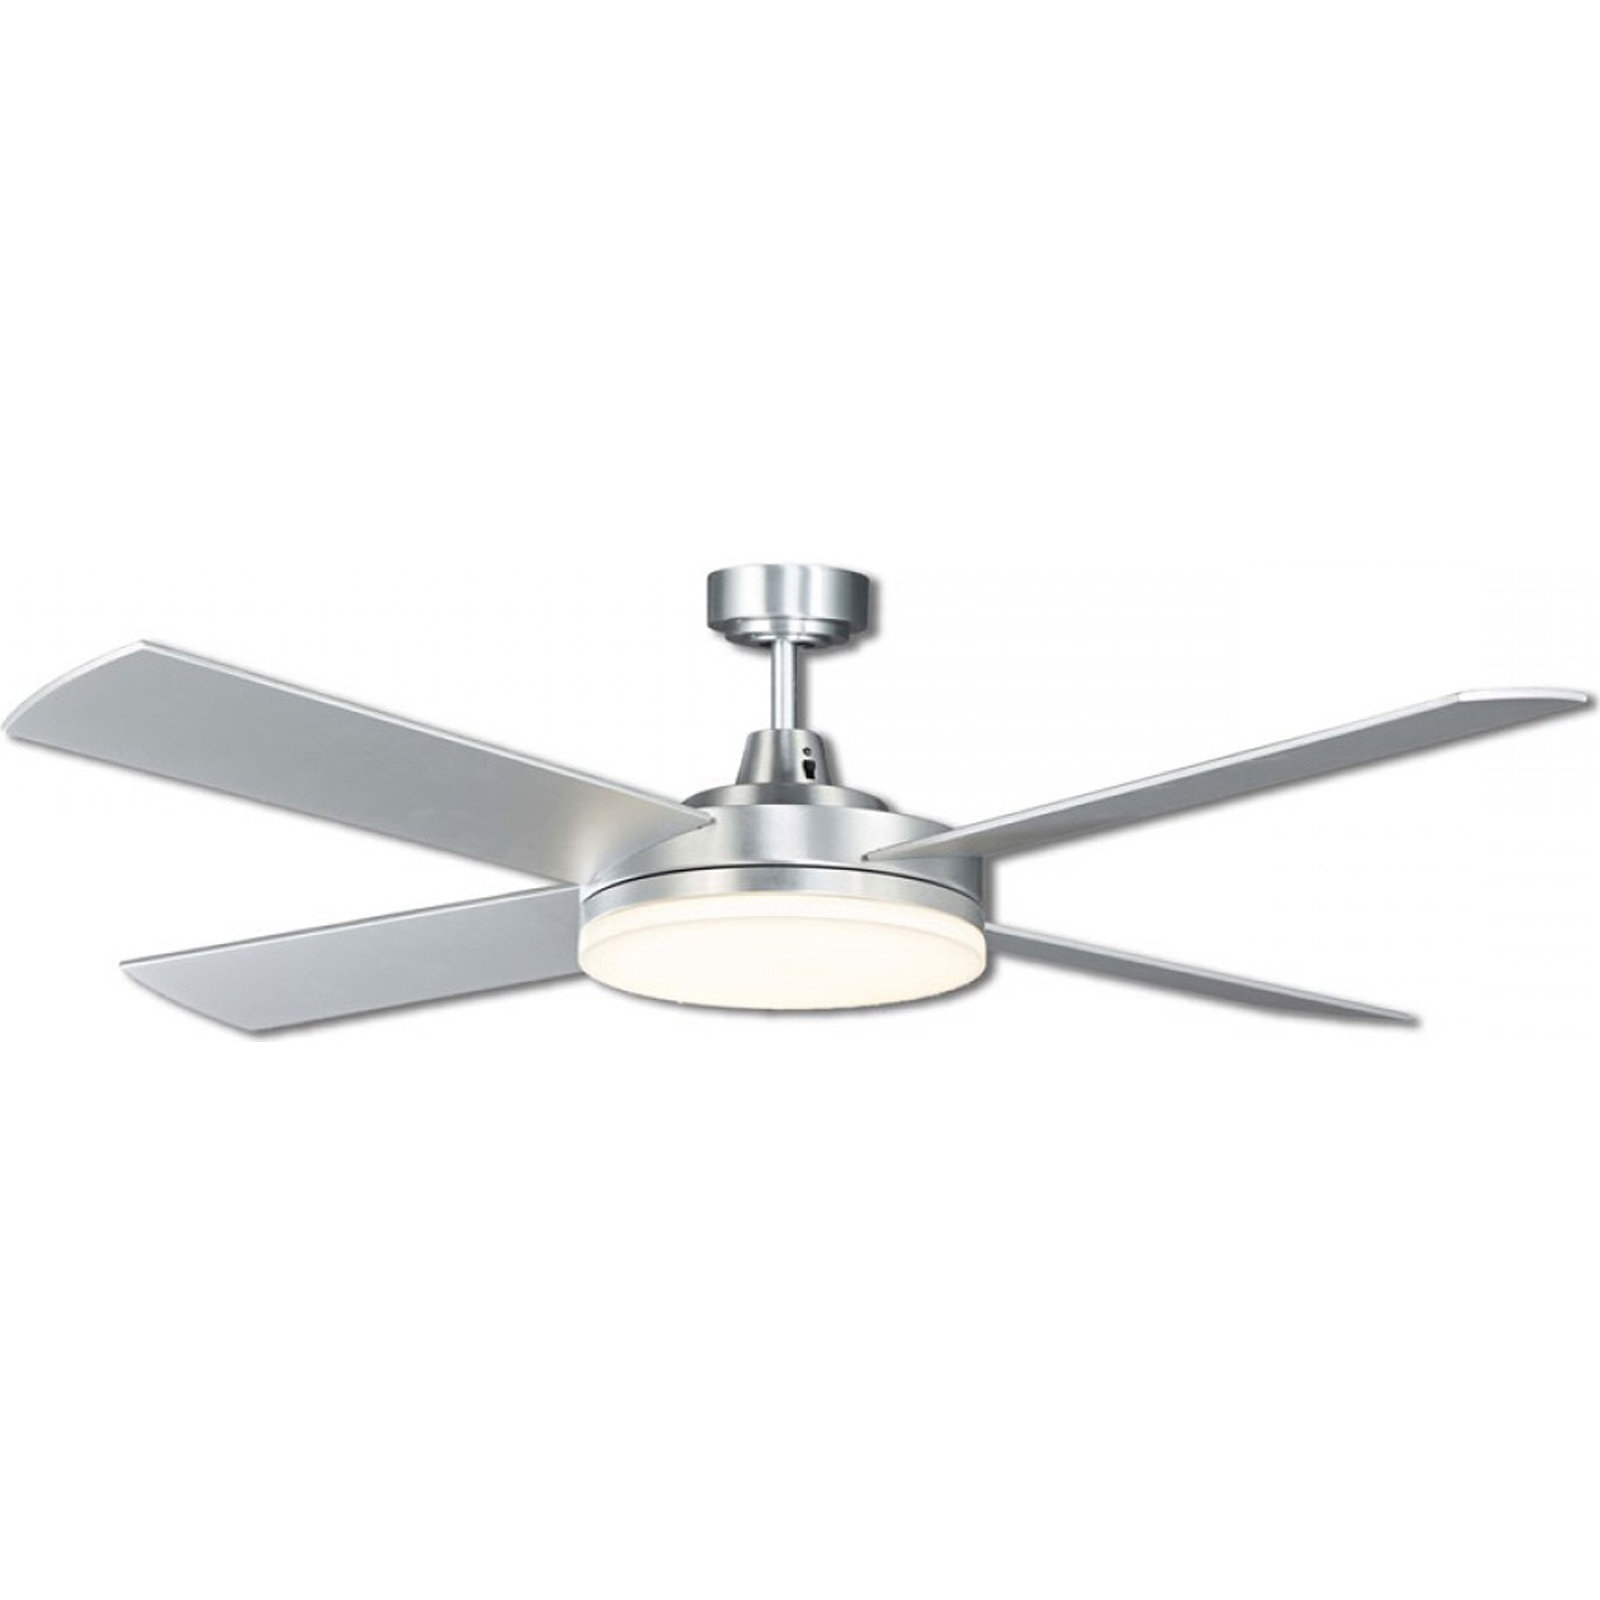 Preferred Outdoor Ceiling Fans With Led Lights Regarding Low Profile Outdoor Ceiling Fans With Lights (View 9 of 20)